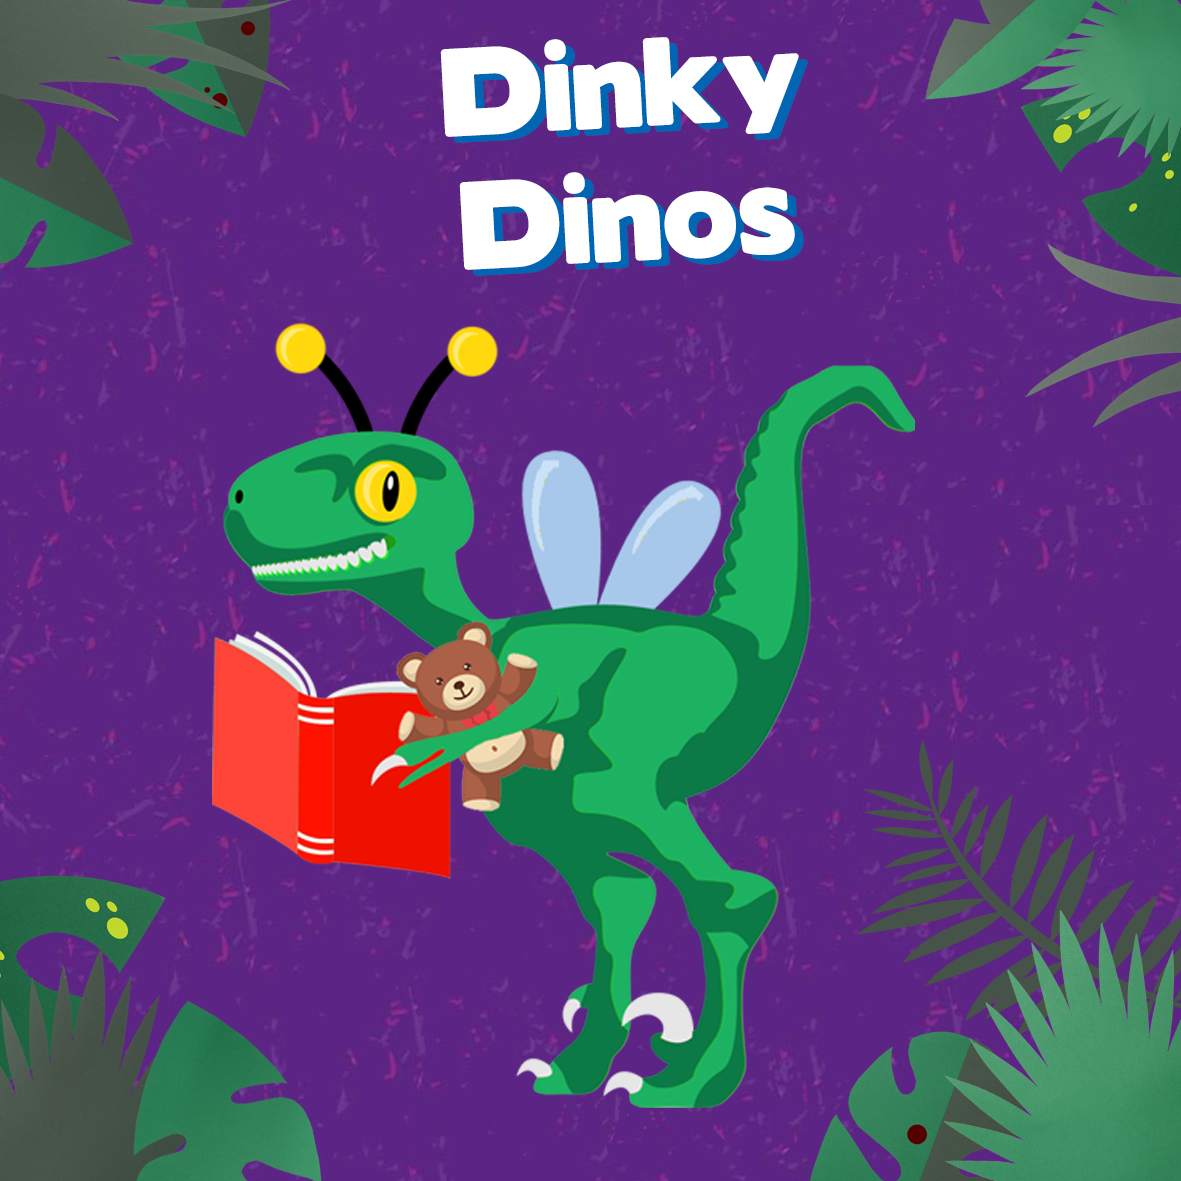 Dinky Dinos: Wilbee The Bumblebee